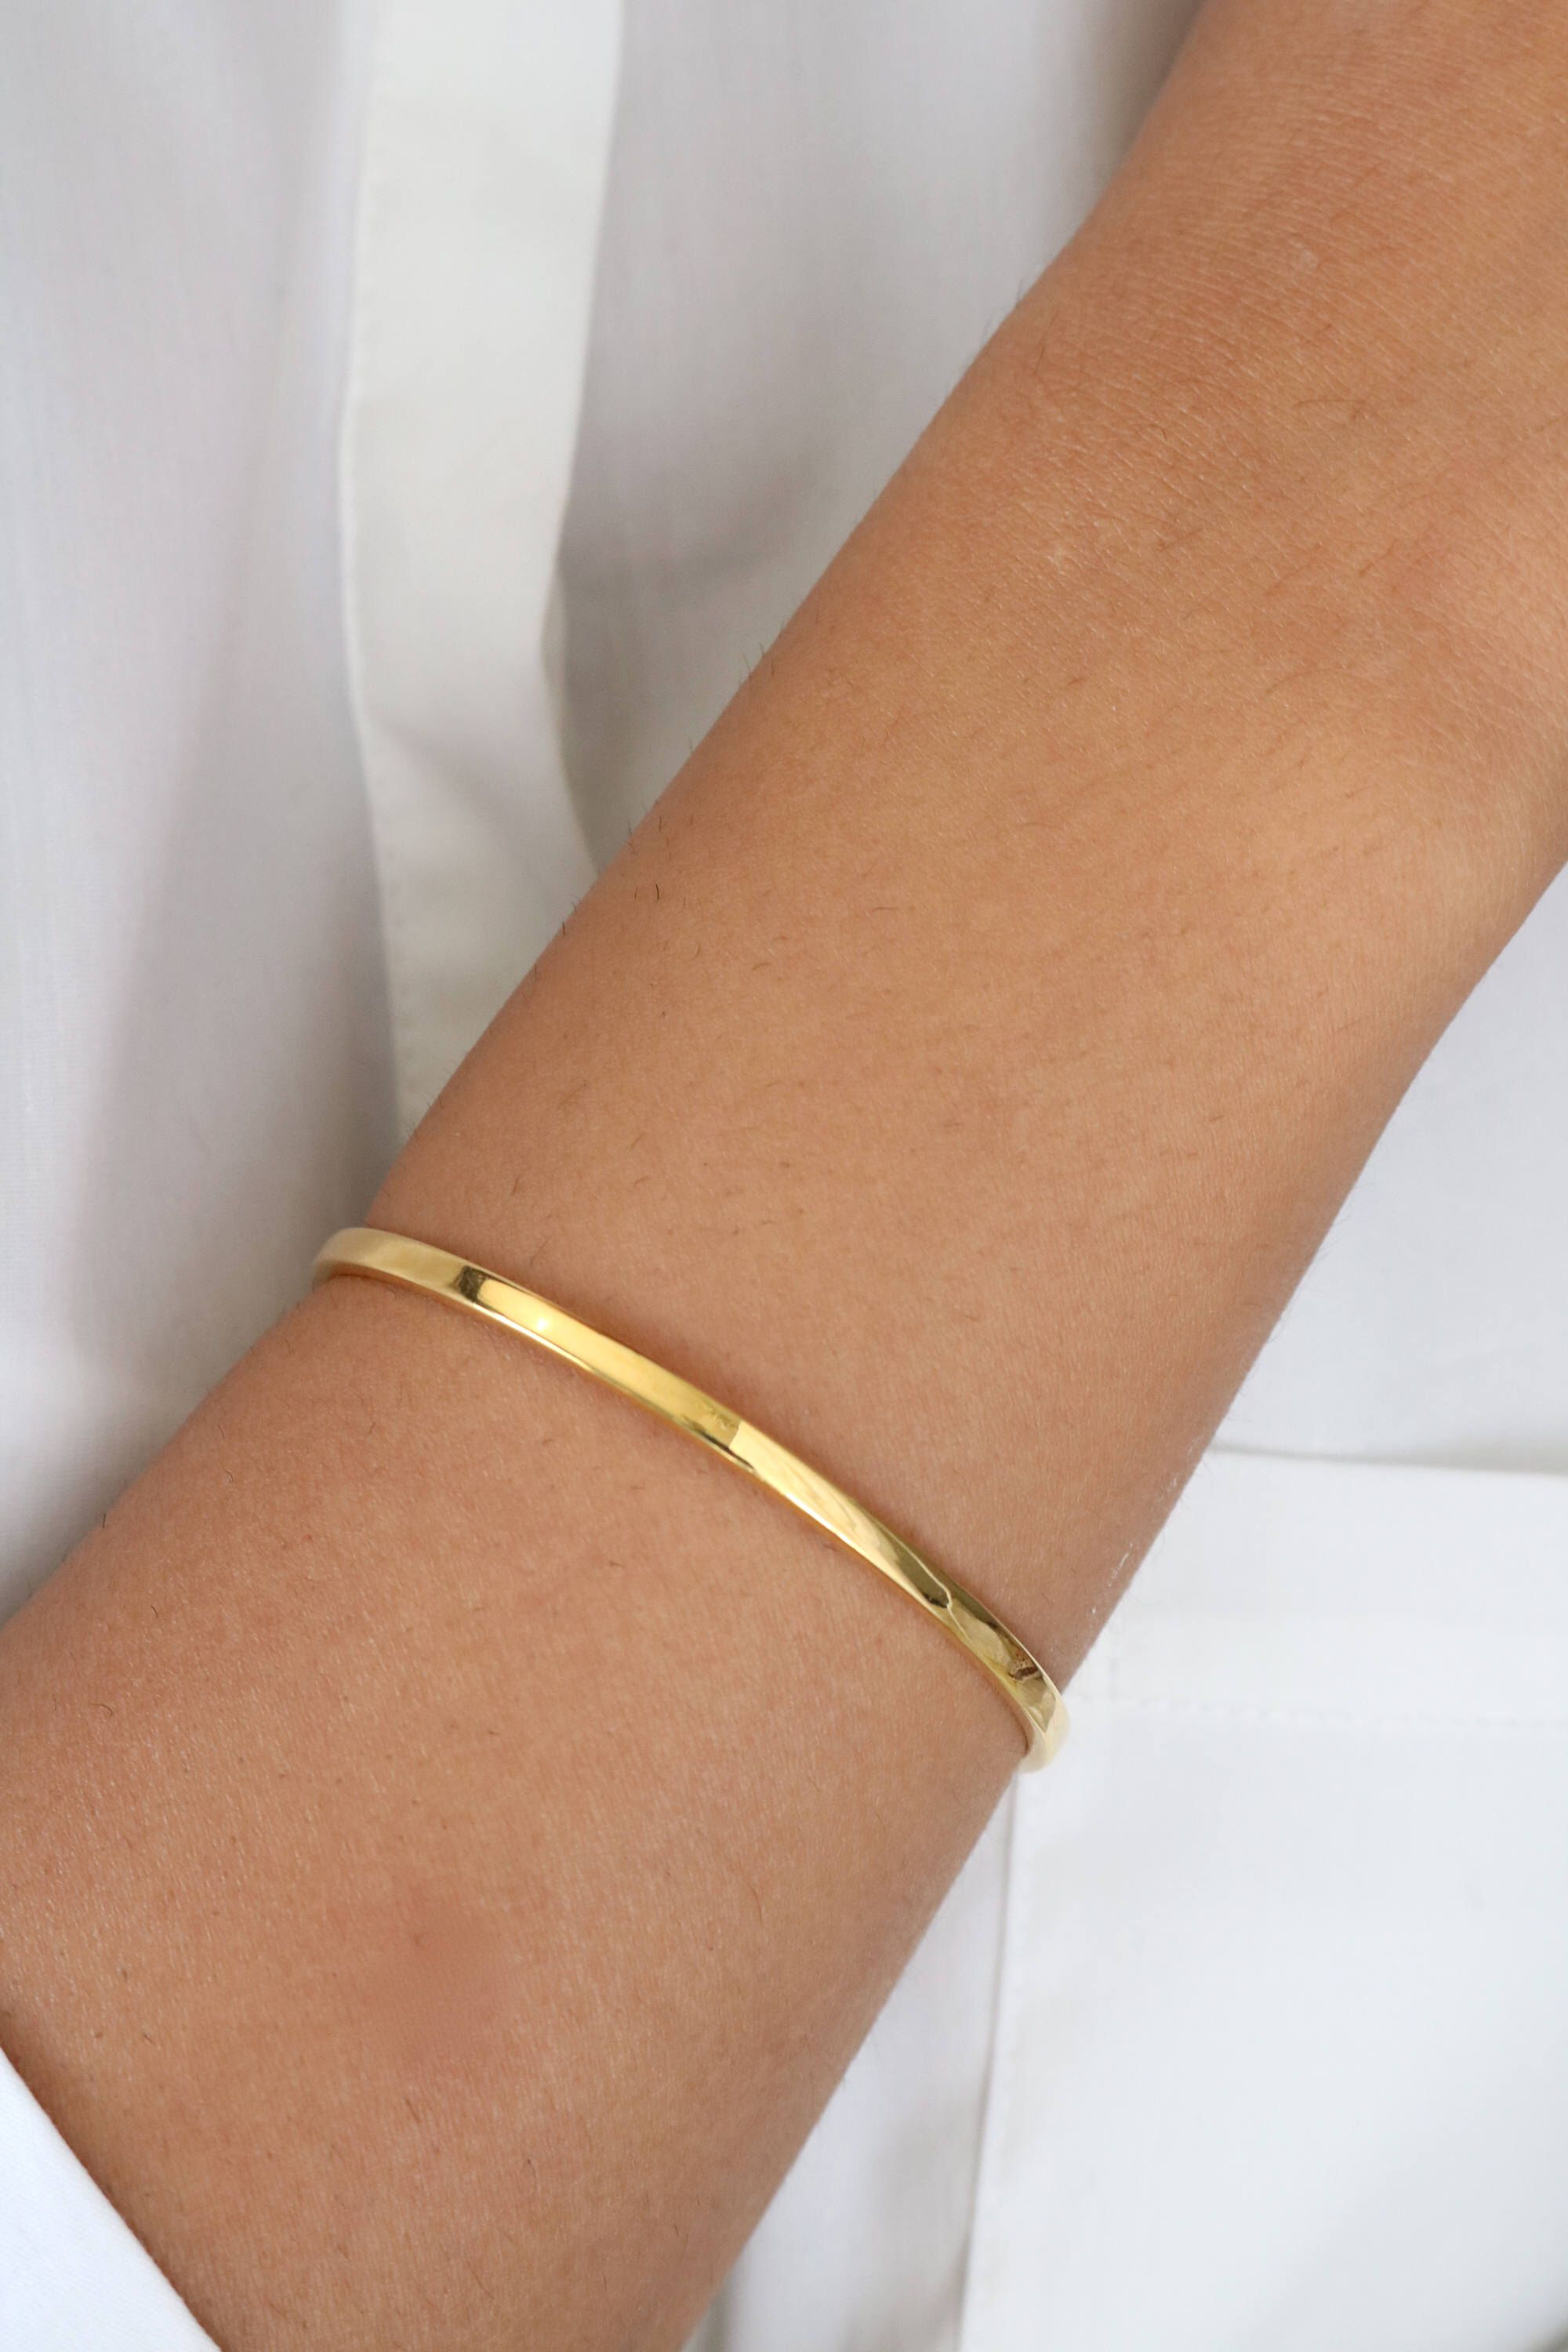 6c77a3ed7e668 18k Solid Gold Bangle - 18k Gold Hinged Bangle - Gift For Her in ...